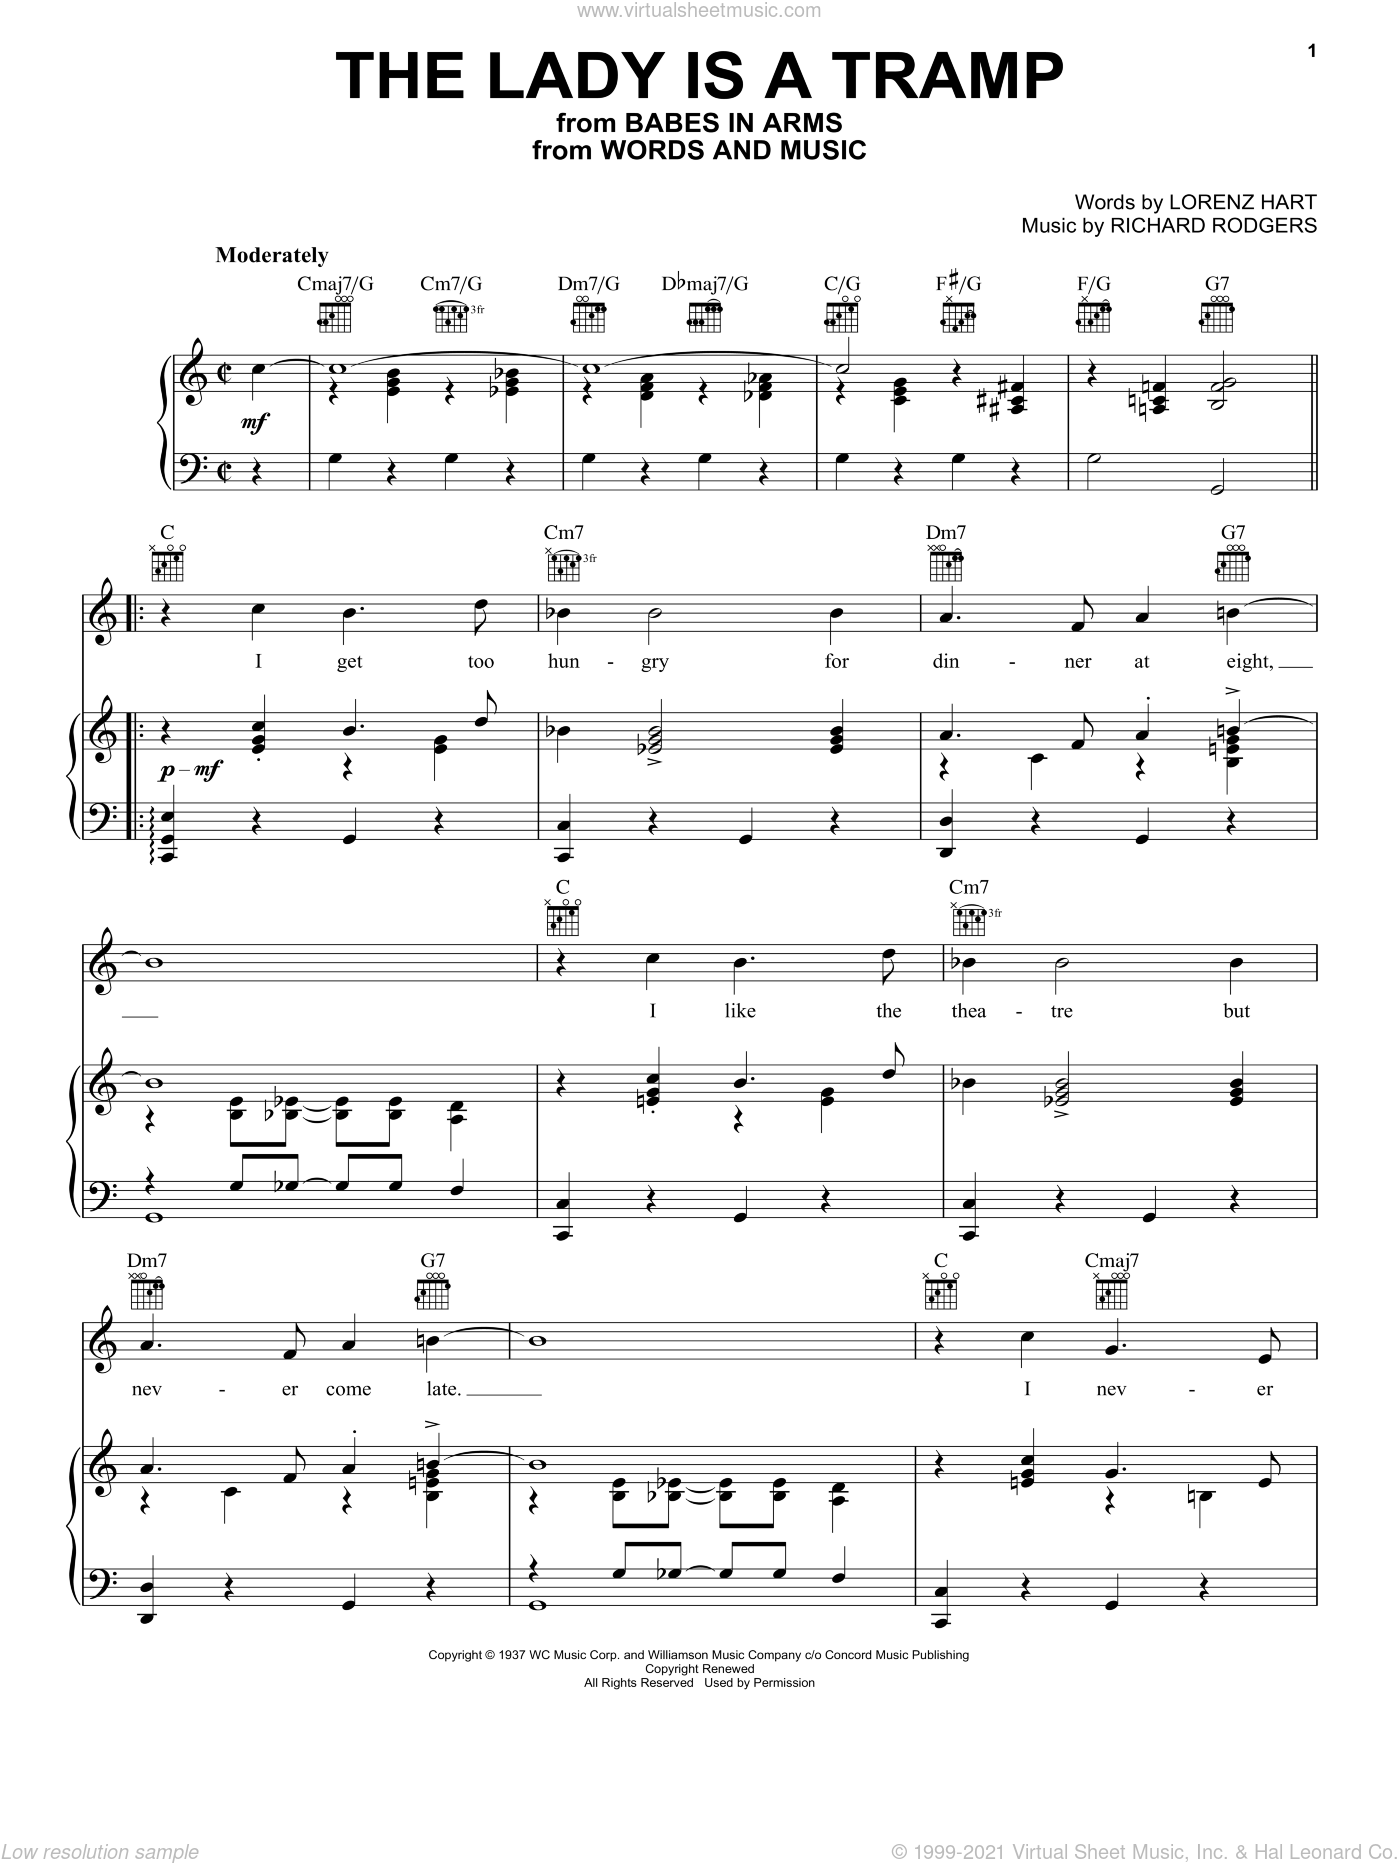 The Lady Is A Tramp sheet music for voice, piano or guitar by Frank Sinatra, Babes In Arms (Musical), Ella Fitzgerald, Lena Horne, Miscellaneous, Rodgers & Hart, Lorenz Hart and Richard Rodgers, intermediate skill level